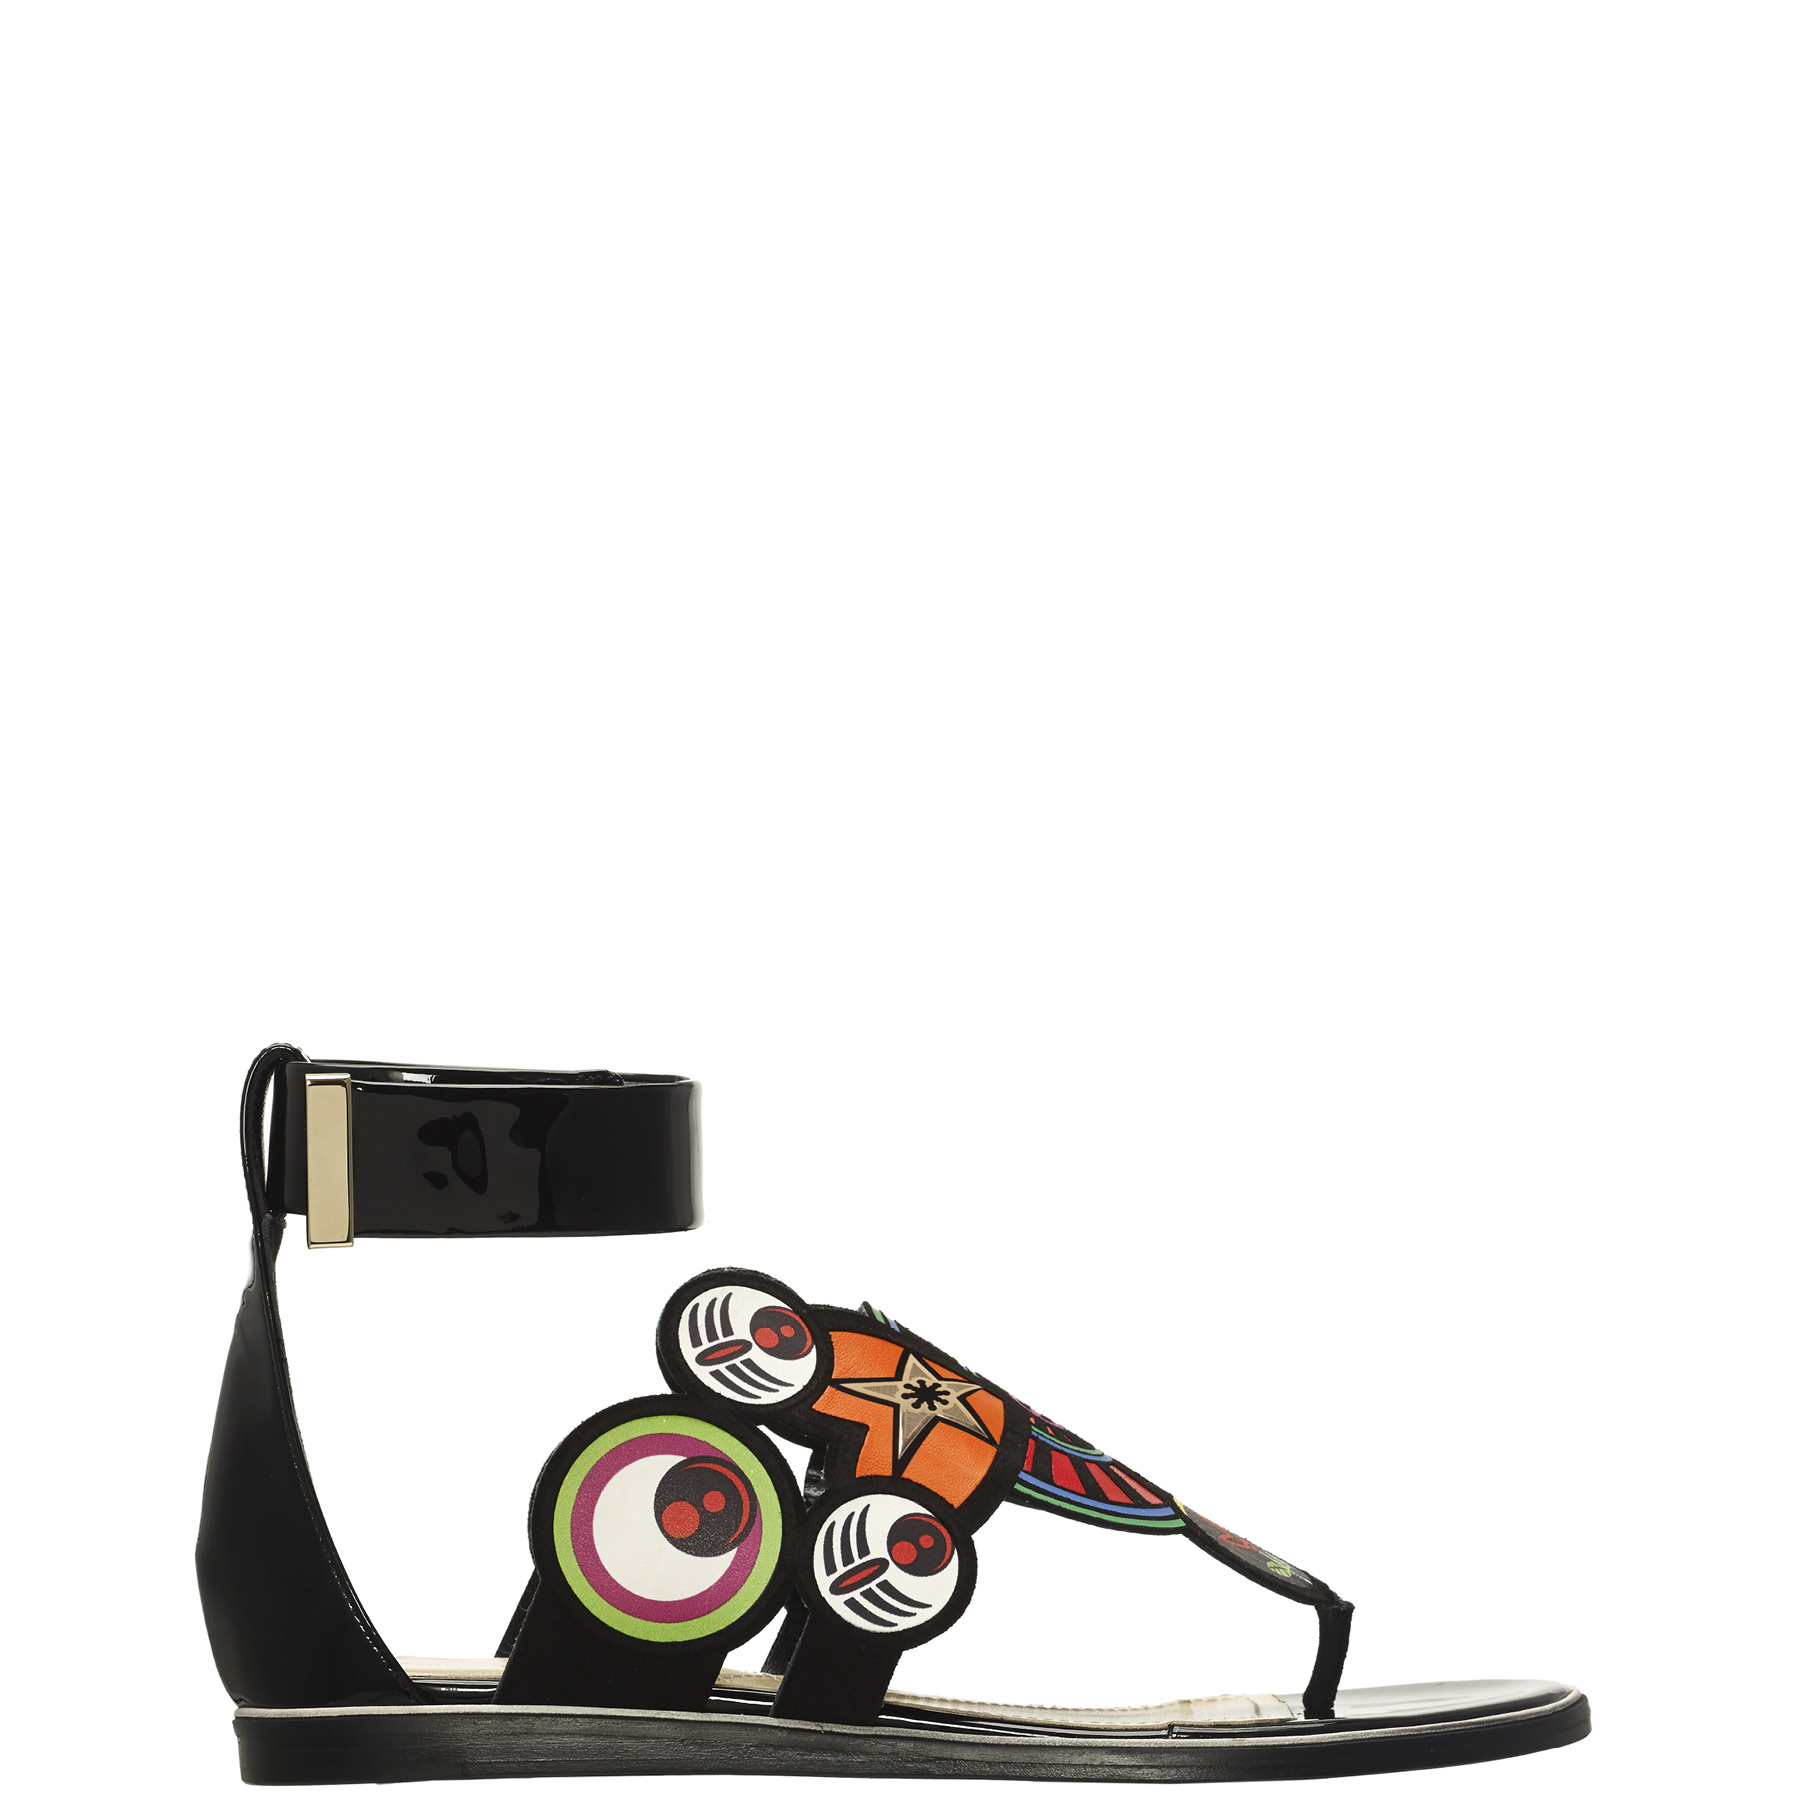 Nicholas-Kirkwood-SS2015-Collection-Flat-Sandals.jpeg